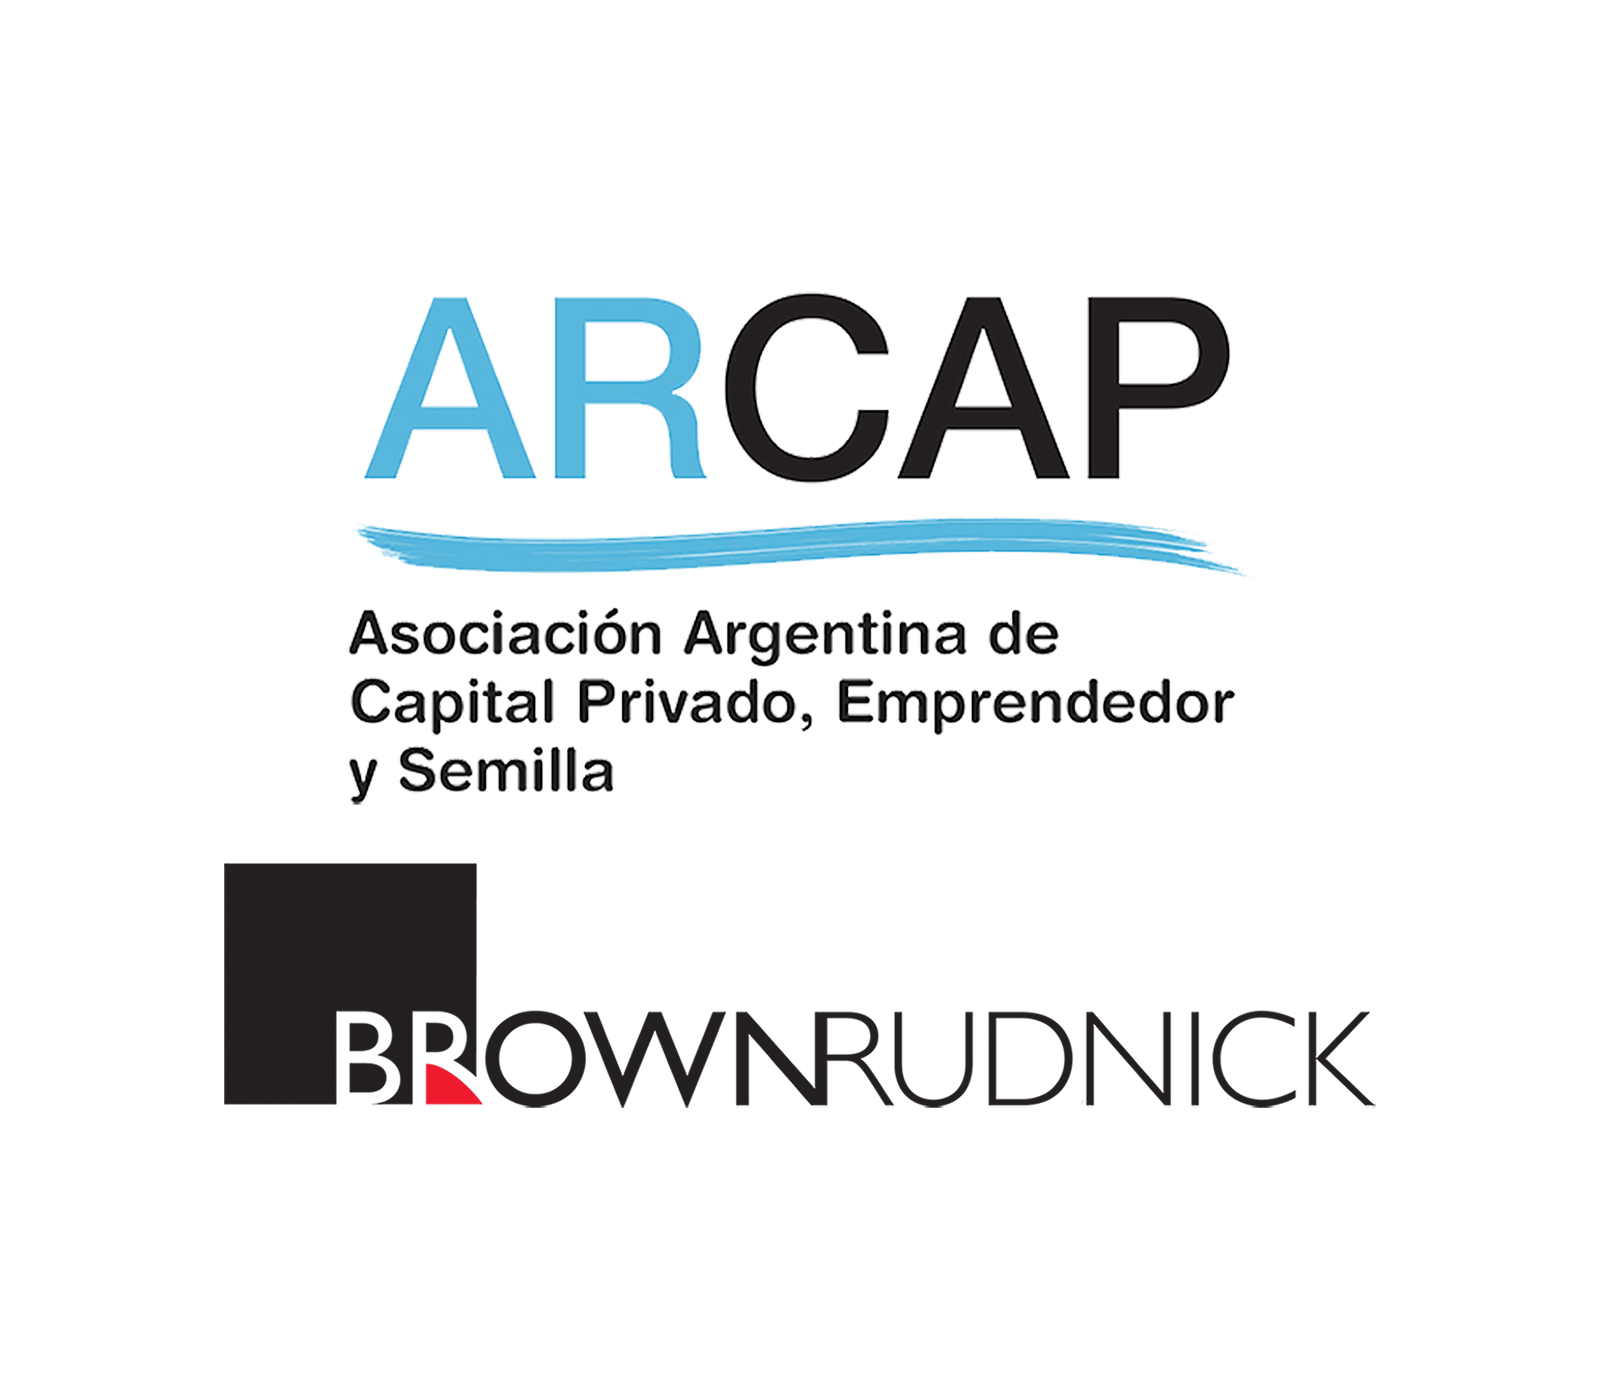 ARCAP BROWN RUDNICK